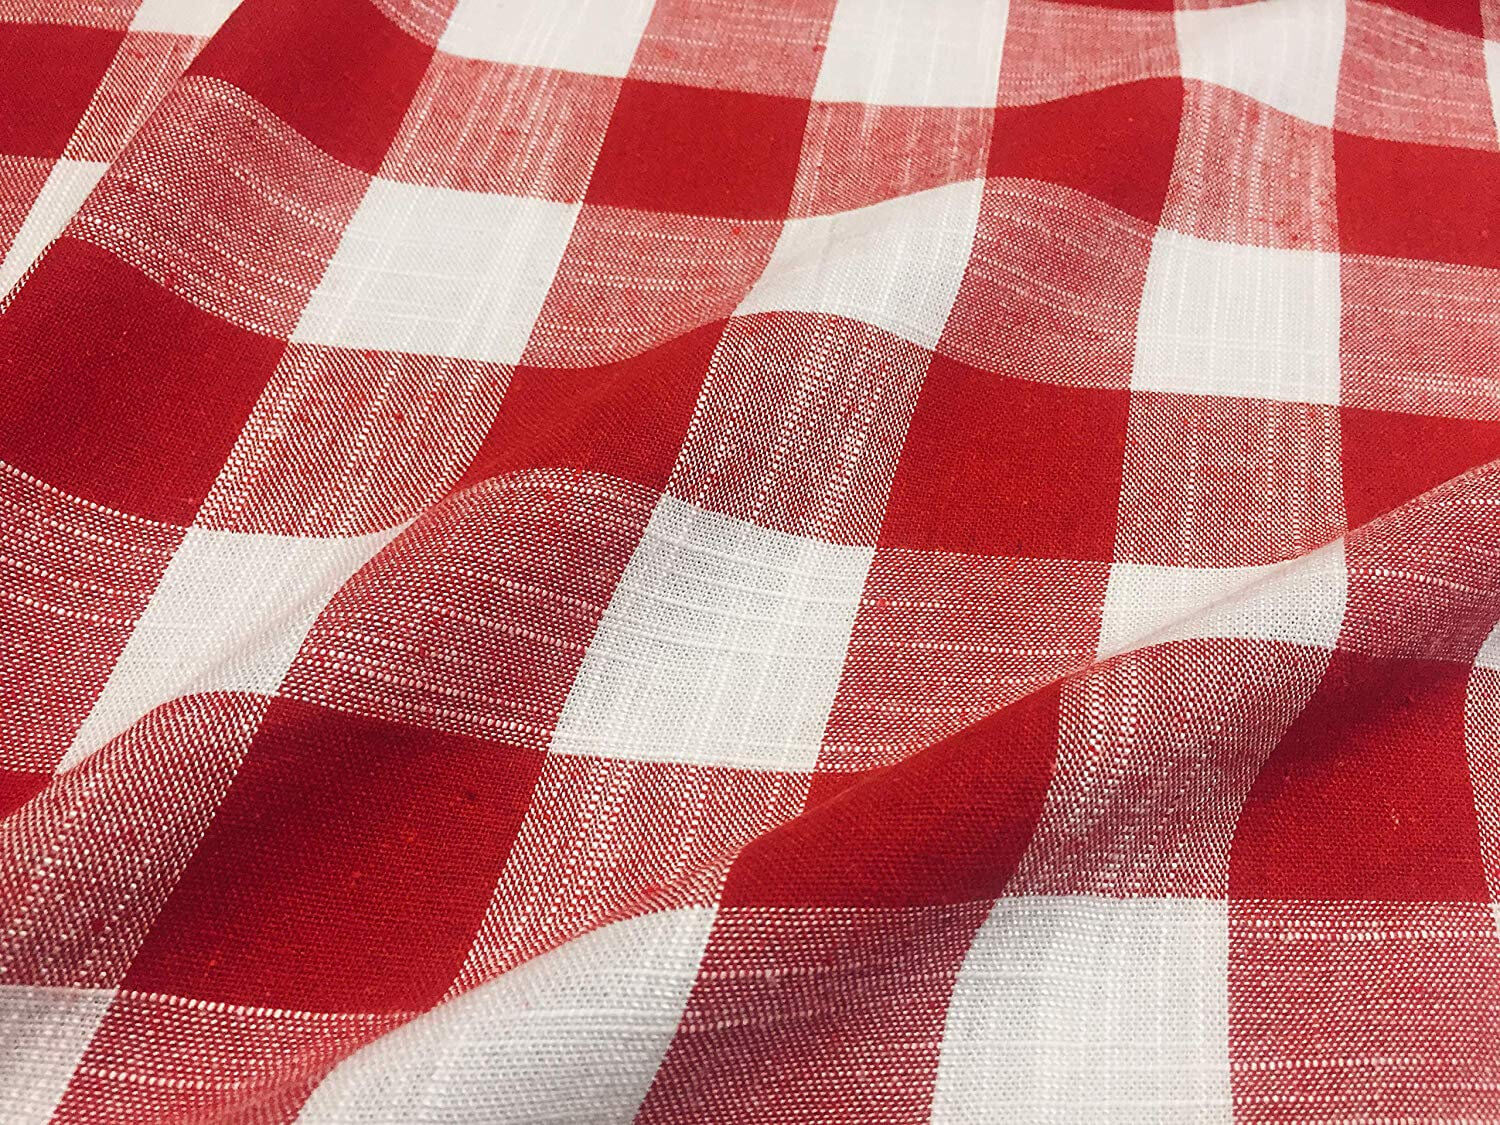 gingham-linen-checked-linen-fabric-plaid-material-buffalo-check-cotton-yarn-140cm-wide-red-white-5d3b06391.jpg